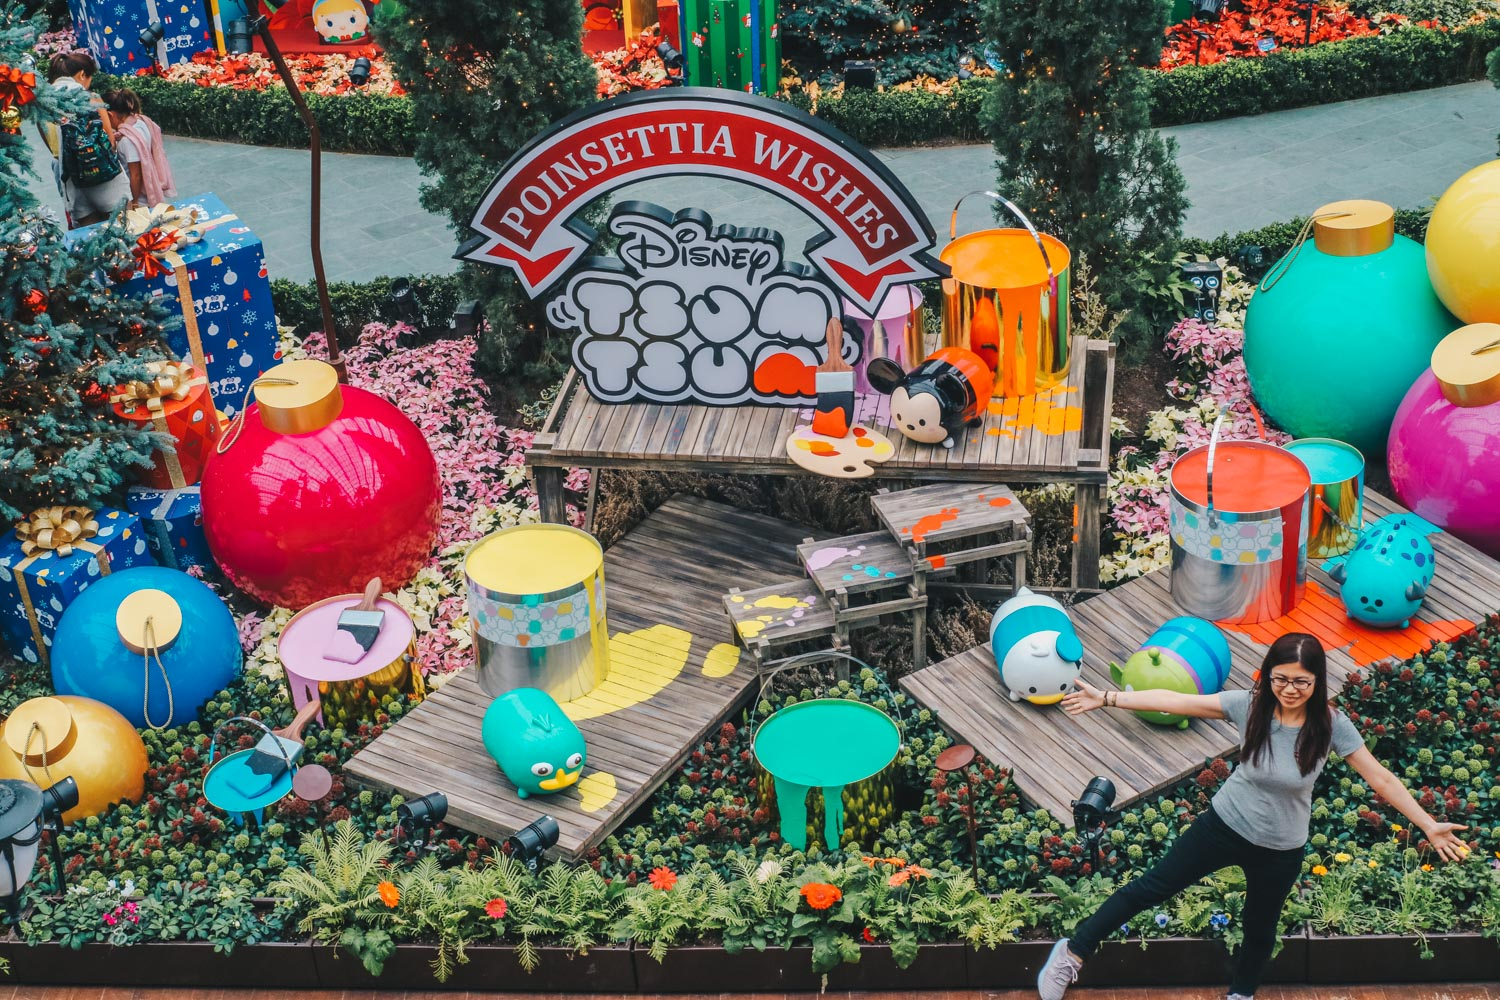 Poinsettia Wishes Featuring Disney Tsum Tsum At Gardens By The Bay